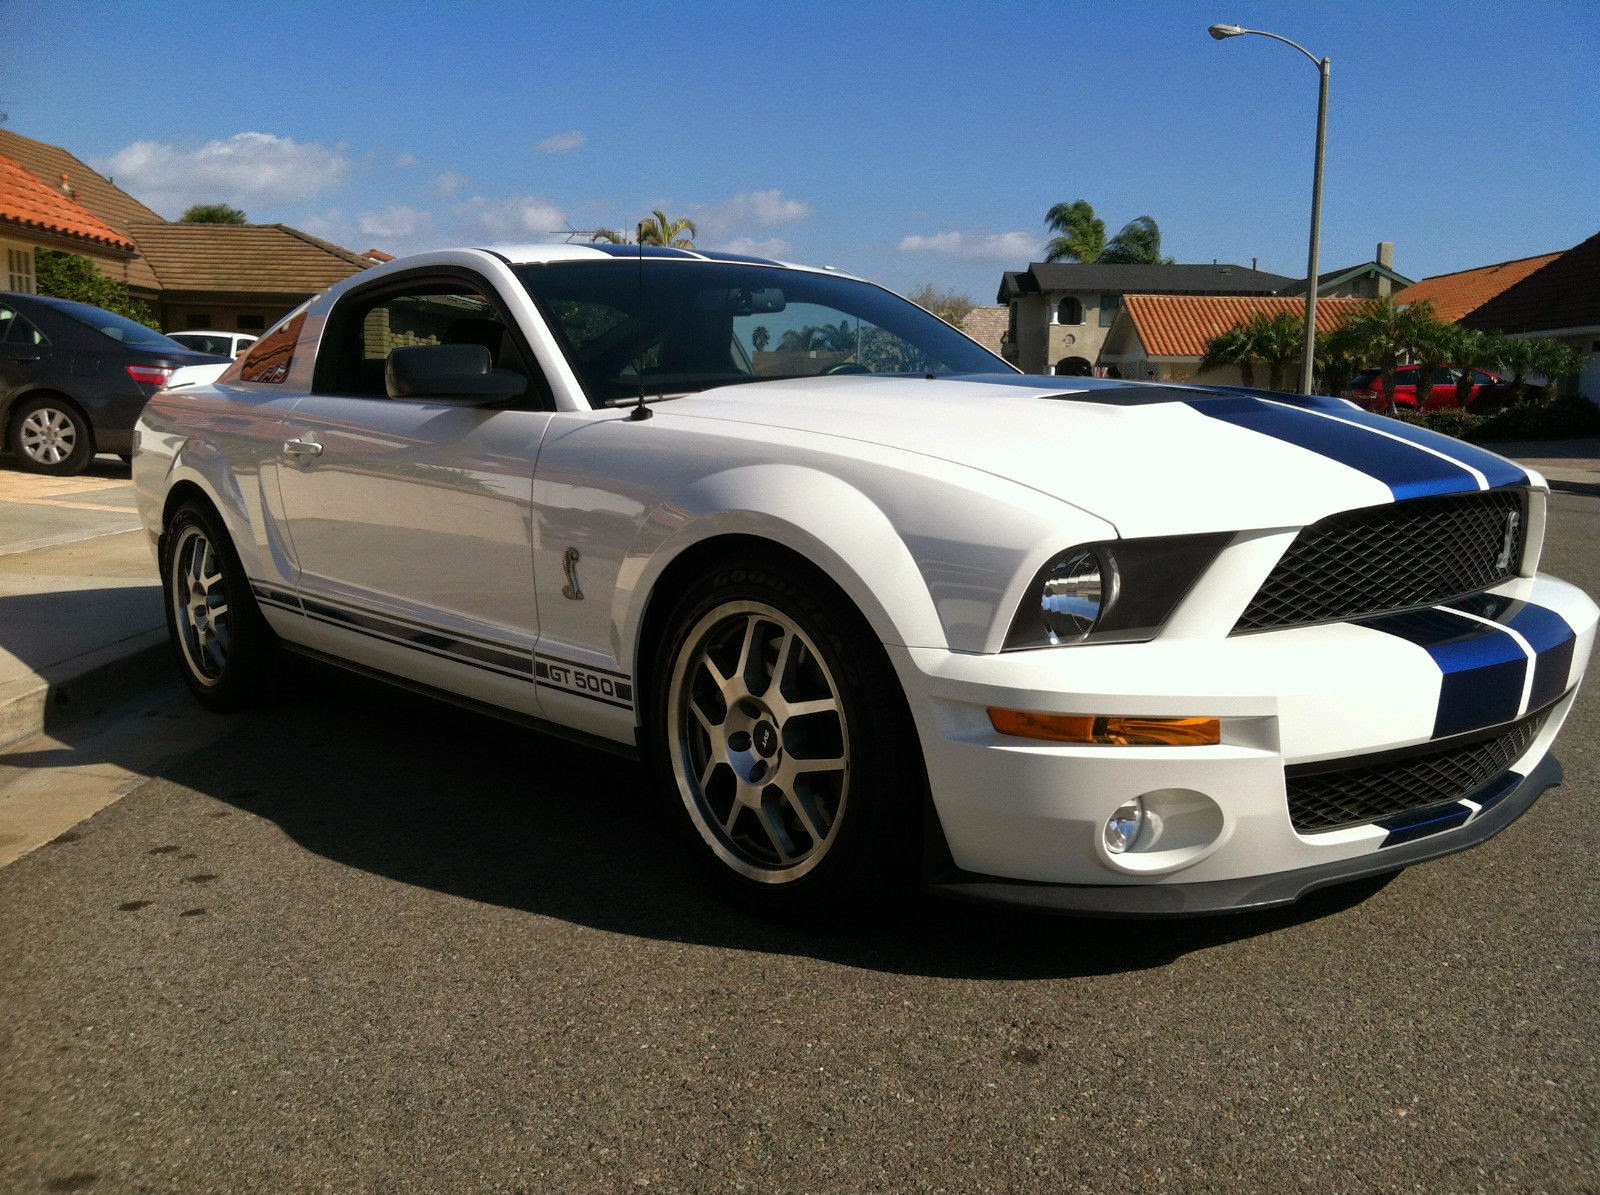 Immaculate white blue stripe 2007 ford mustang shelby gt500 5 4l coupe mildly modified for enhanced handling performance and convenience with the